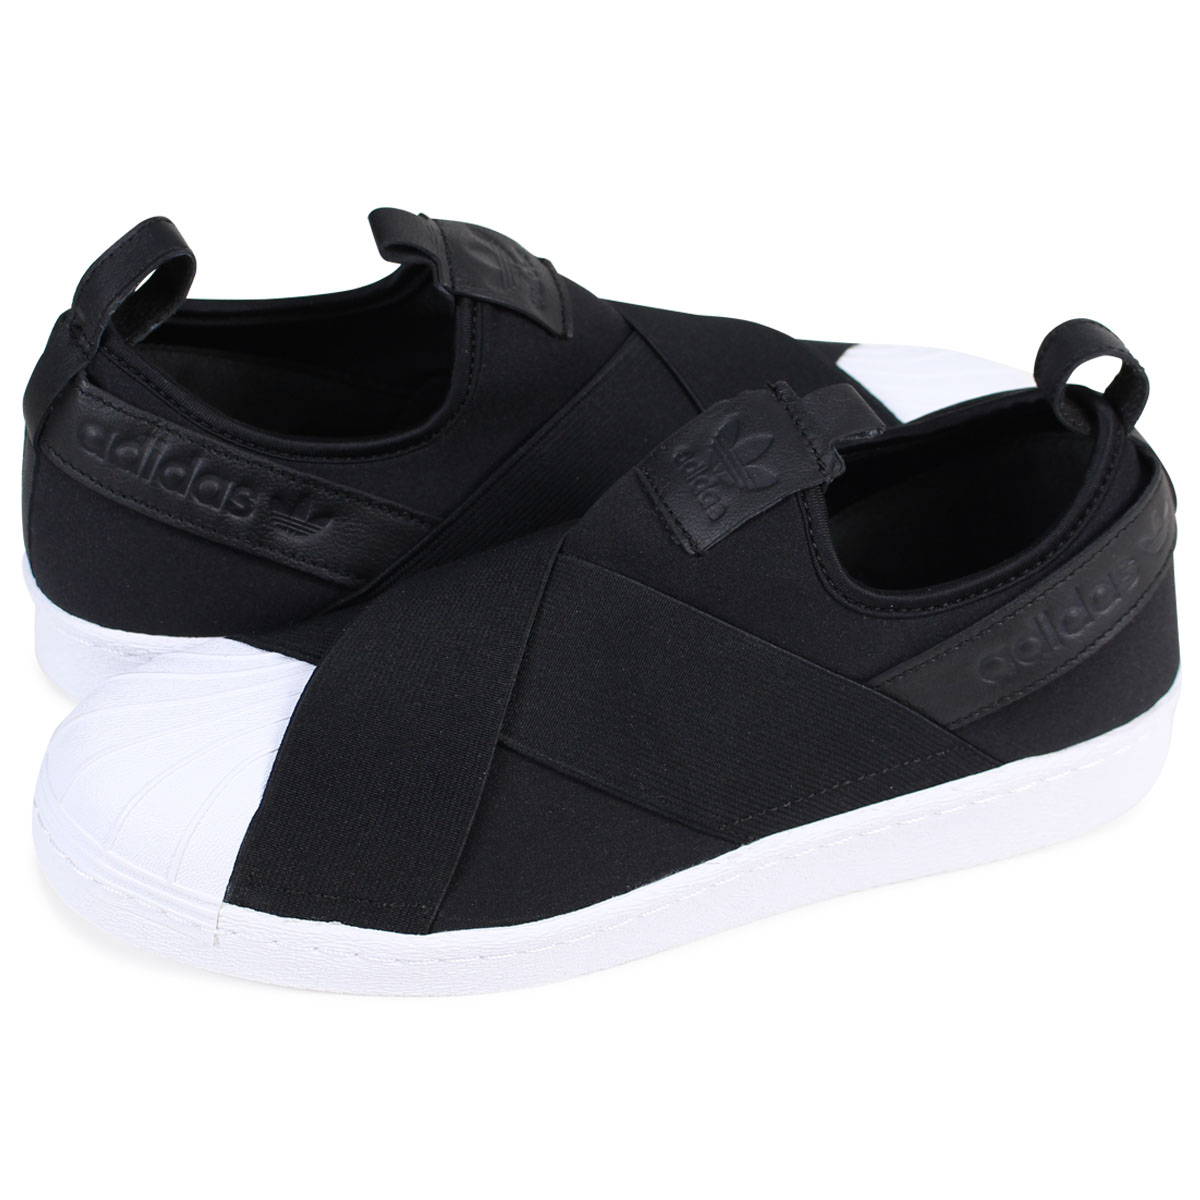 online retailer fb8c8 52129 adidas Originals SUPERSTAR SLIP-ON Adidas superstar sneakers slip-ons men  gap Dis BZ0112 black originals